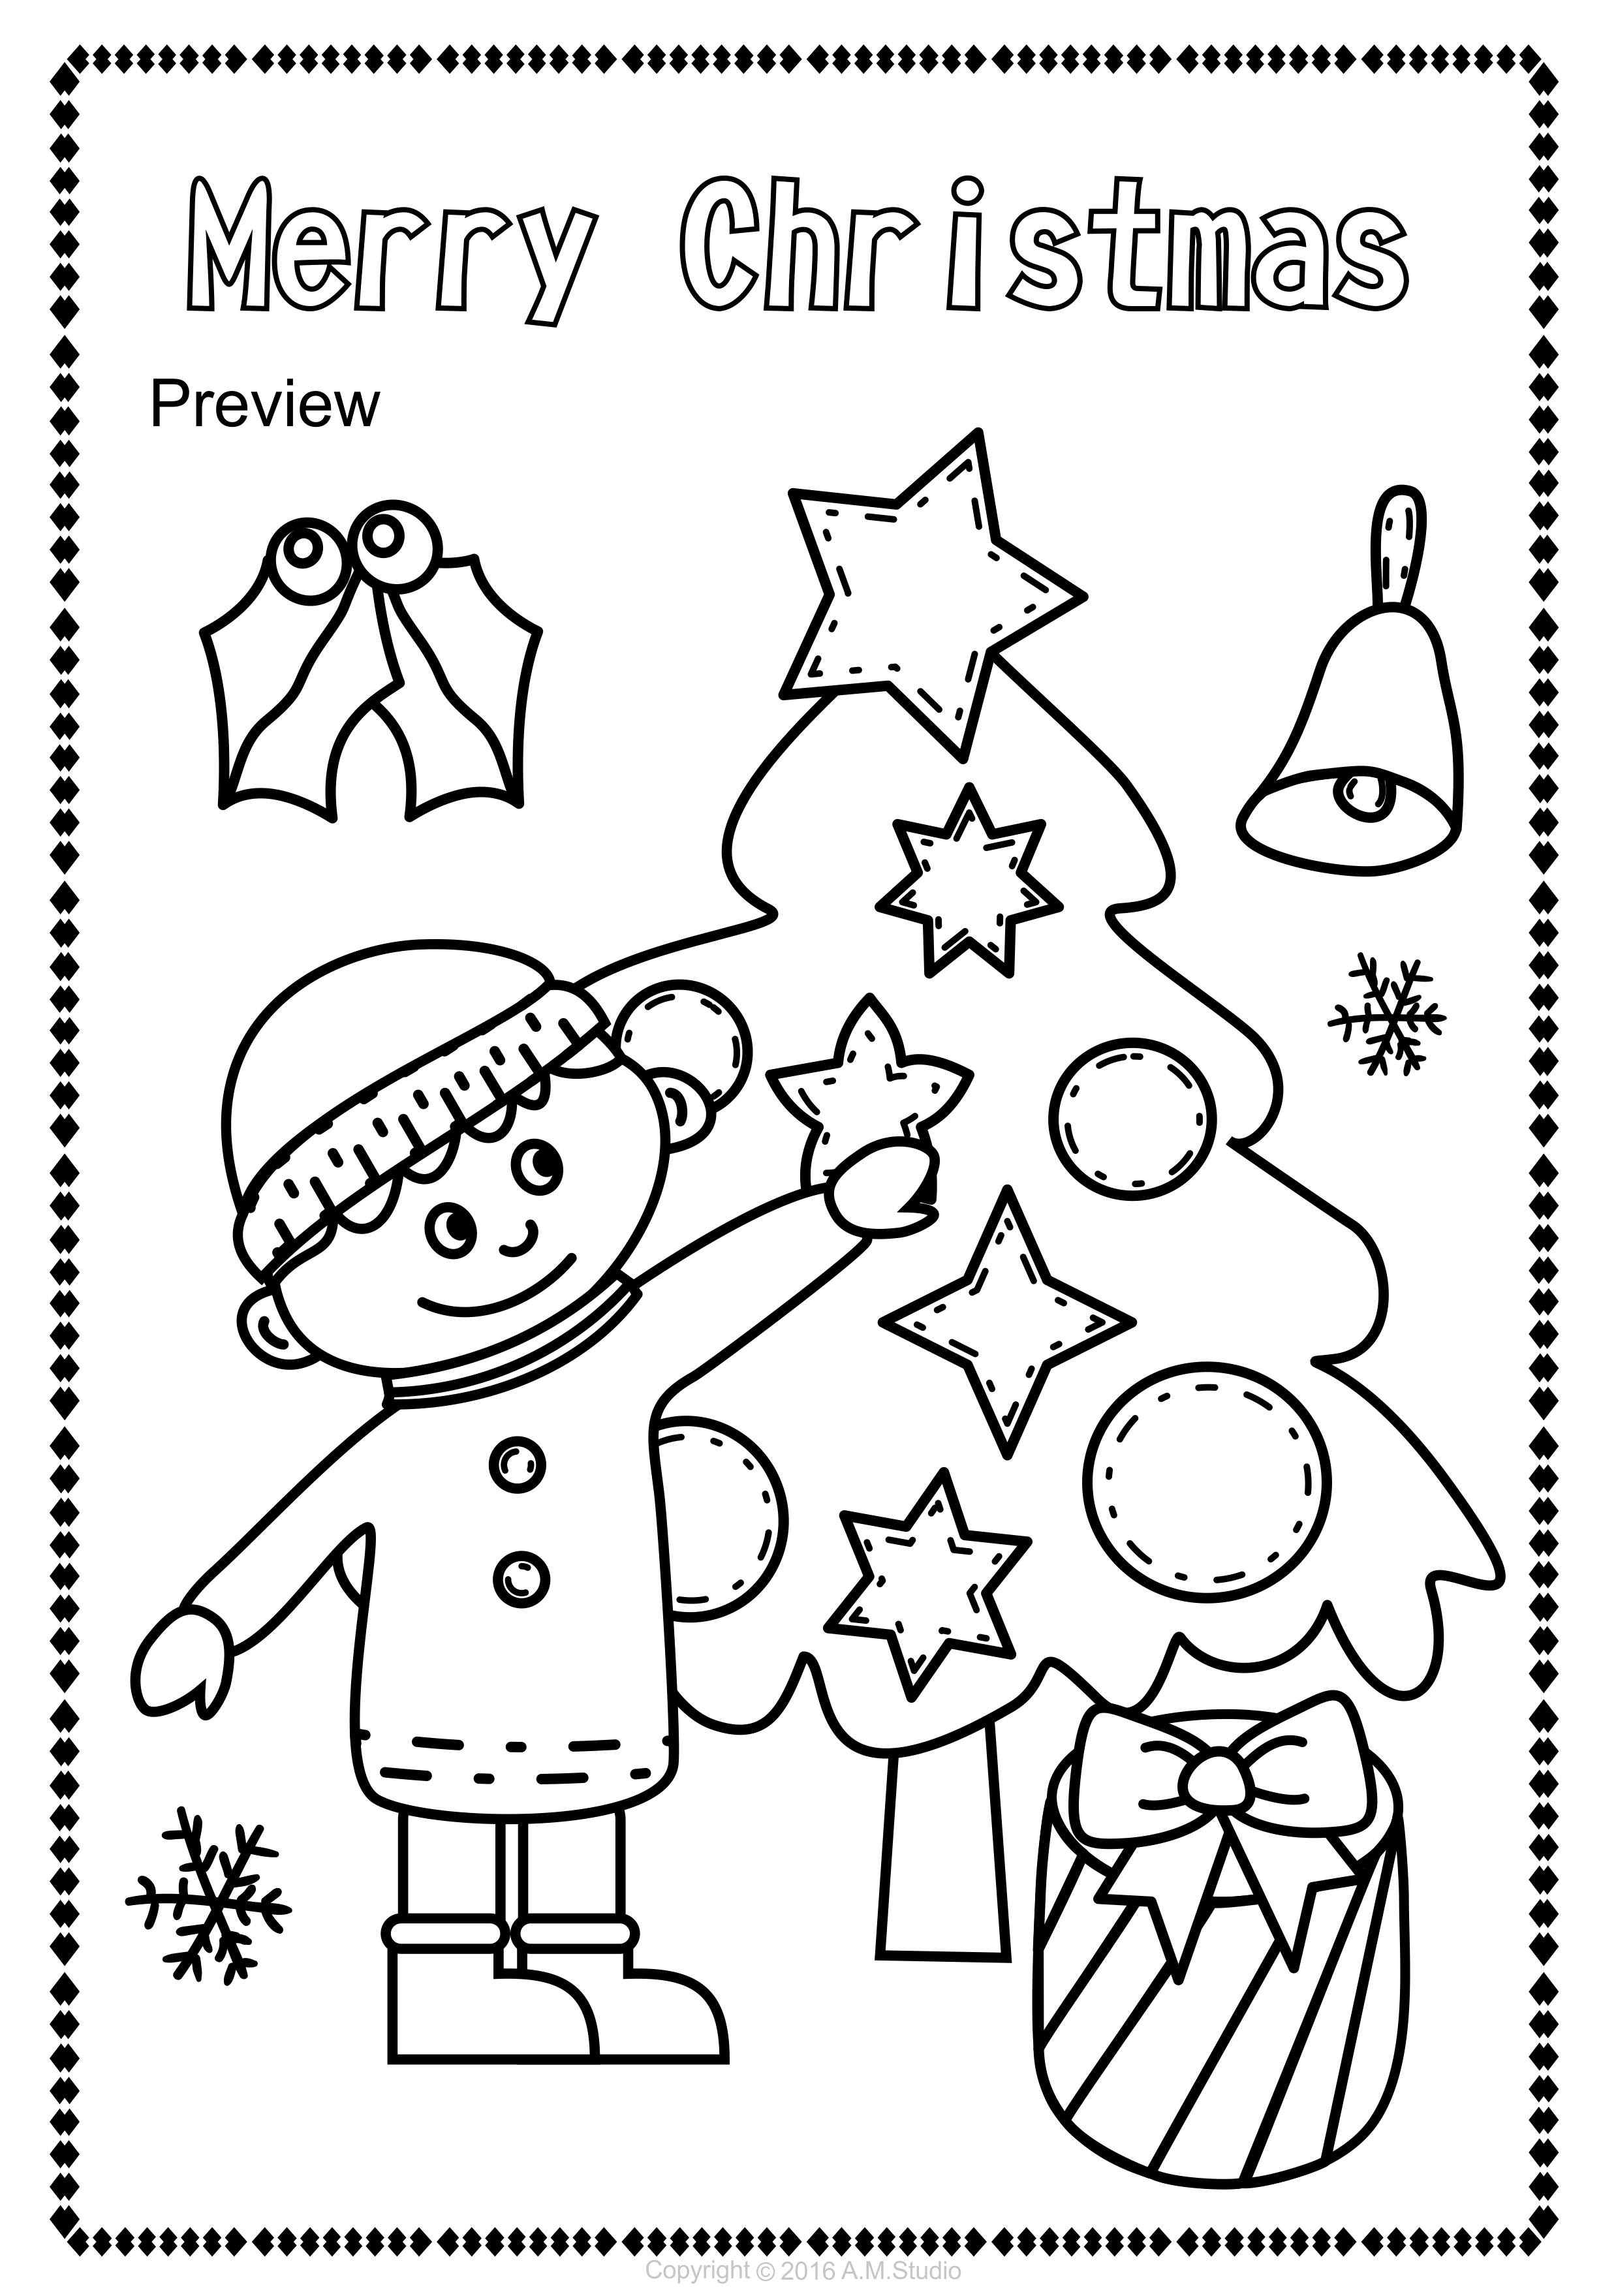 This Christmas Coloring Pages Activity Includes 14